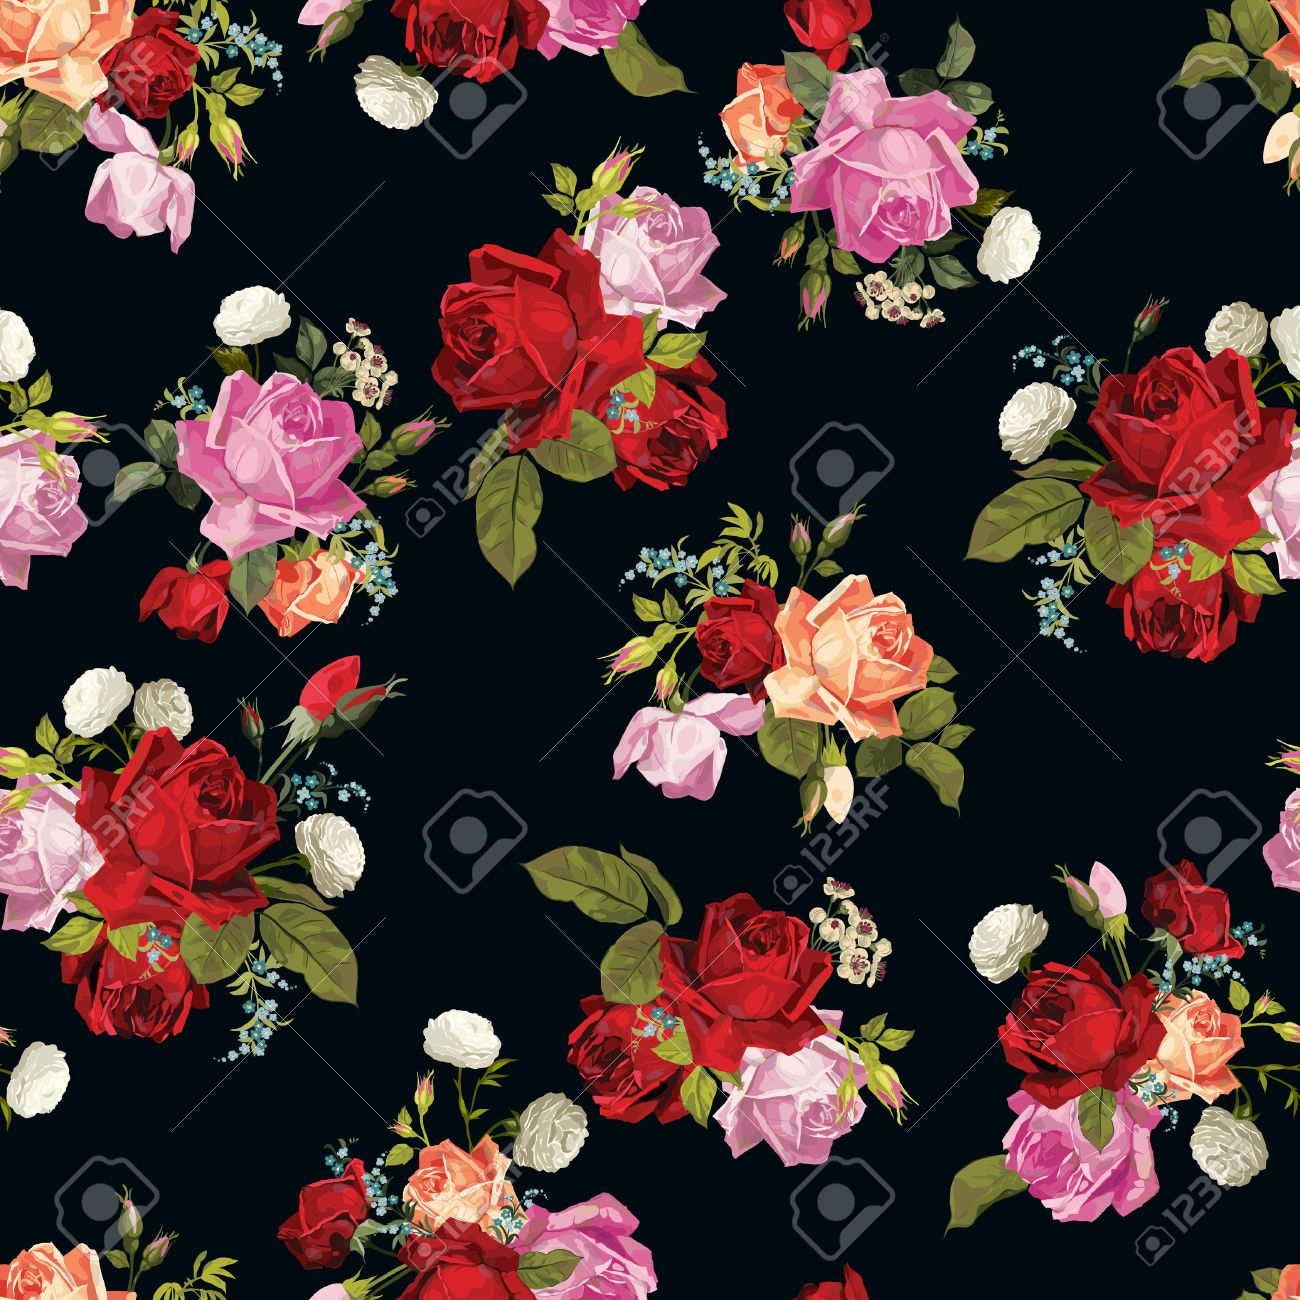 Abstract seamless floral pattern with of white pink red and orange roses on black